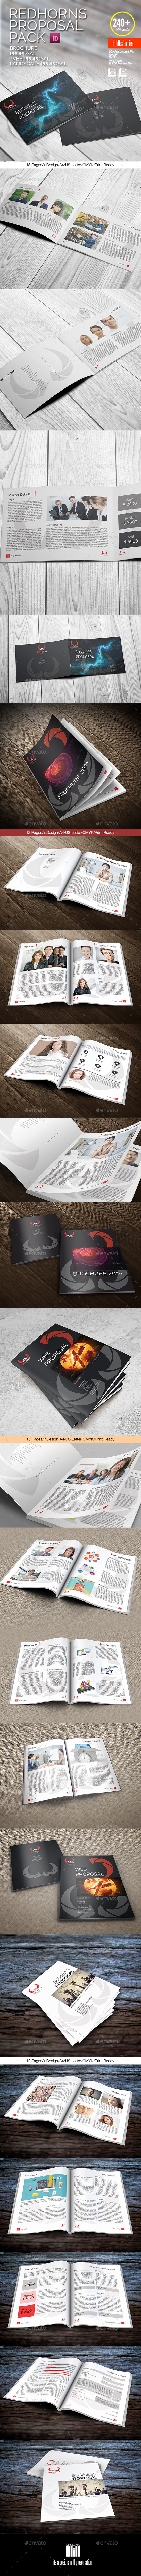 GraphicRiver Redhorns Proposal Pack 8799614